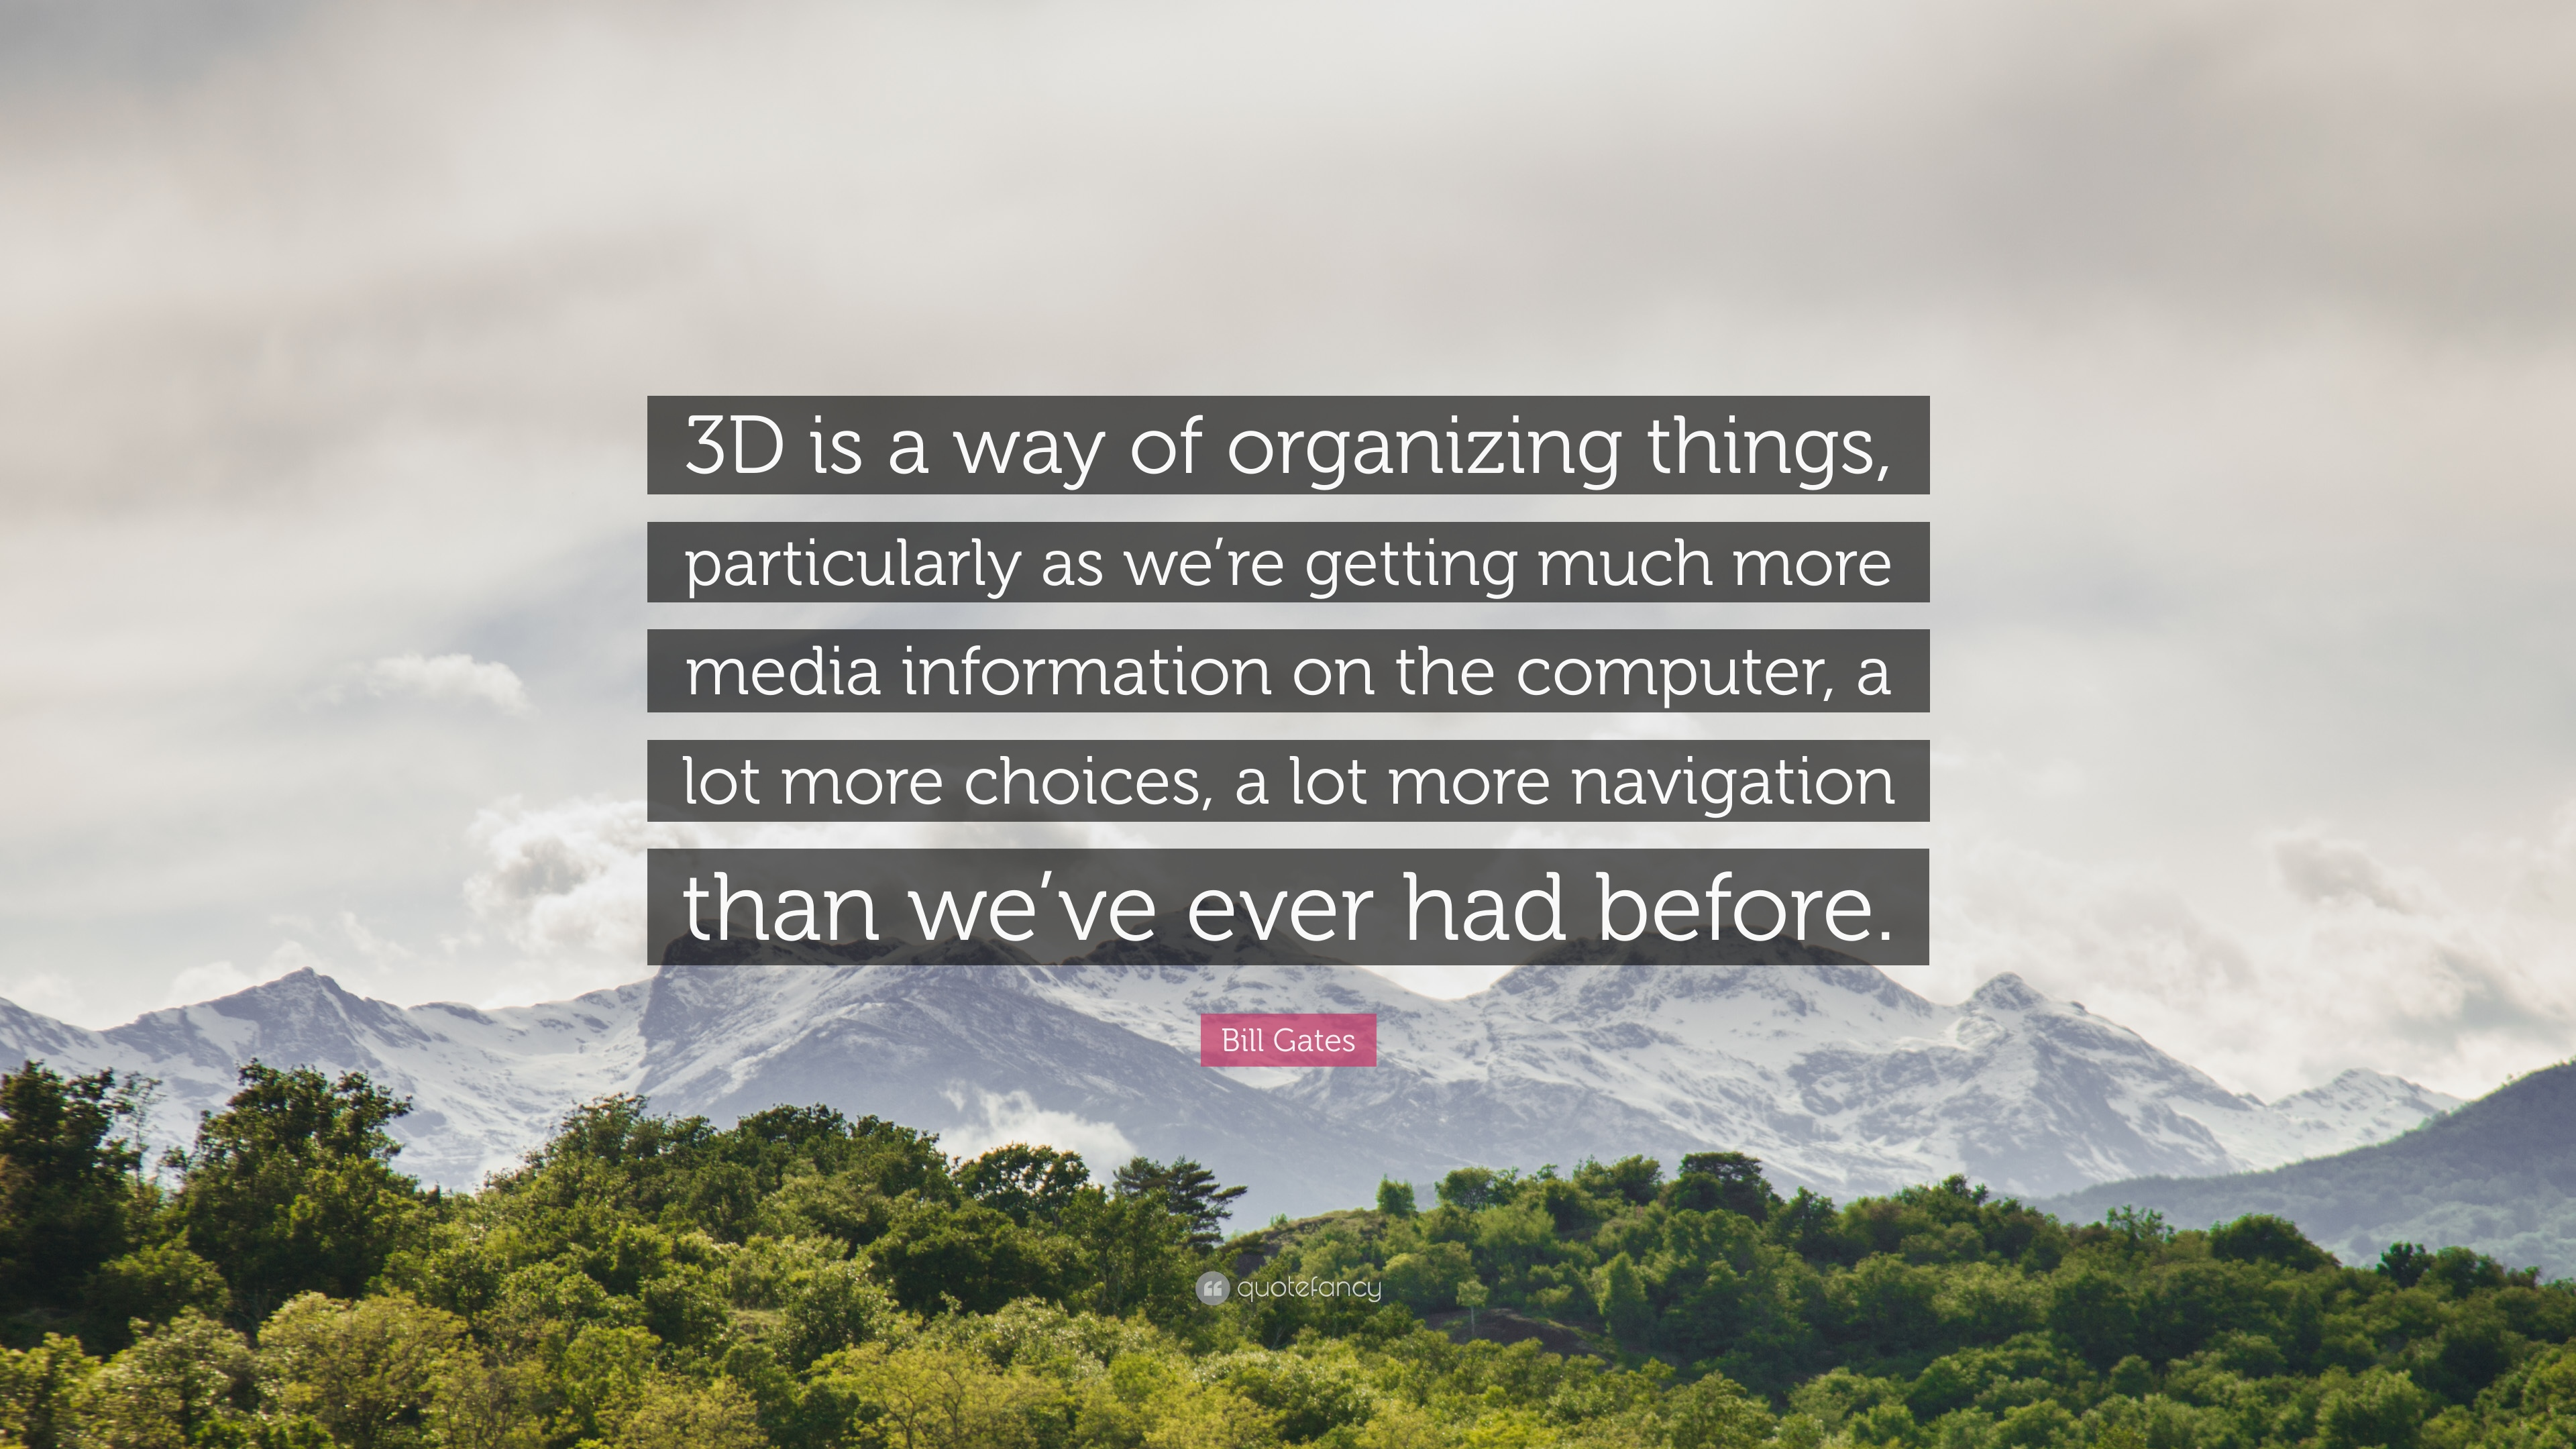 bill gates quote 3d is a way of organizing things particularly as we